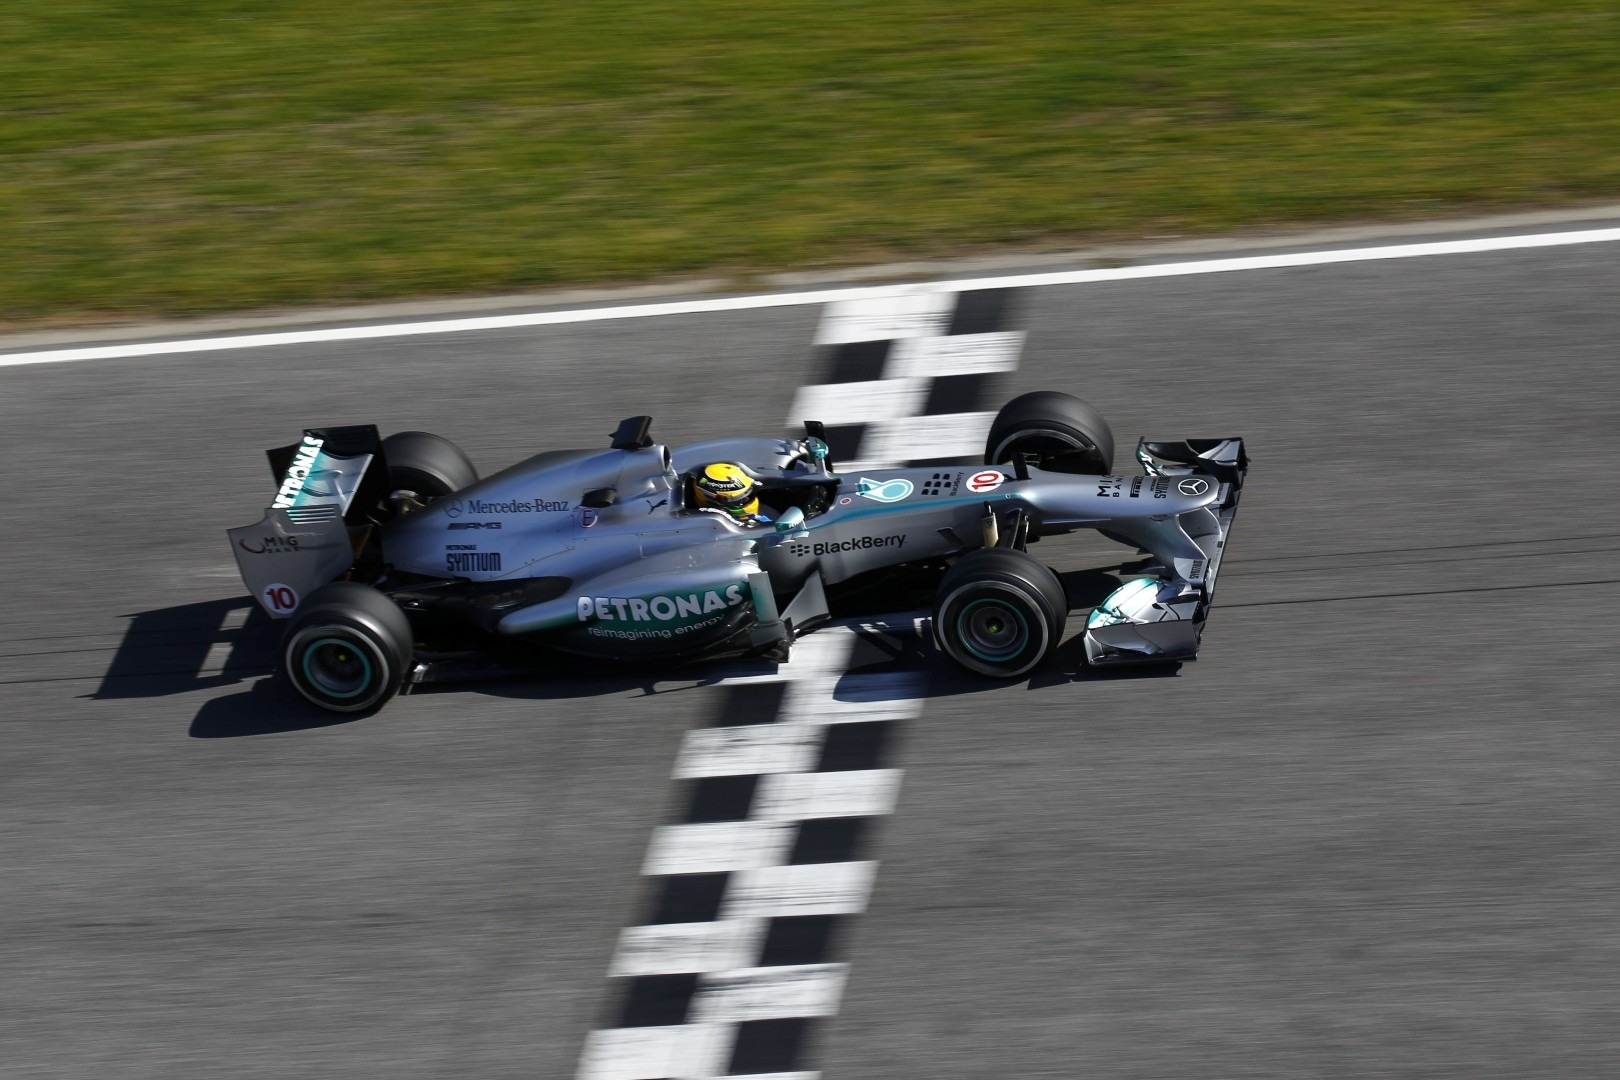 Barcelona F1 Testday 7 Hamilton Breaks Catalunya Lap Record Vettel Expects Indian Circuit To Be Secondfastest Track